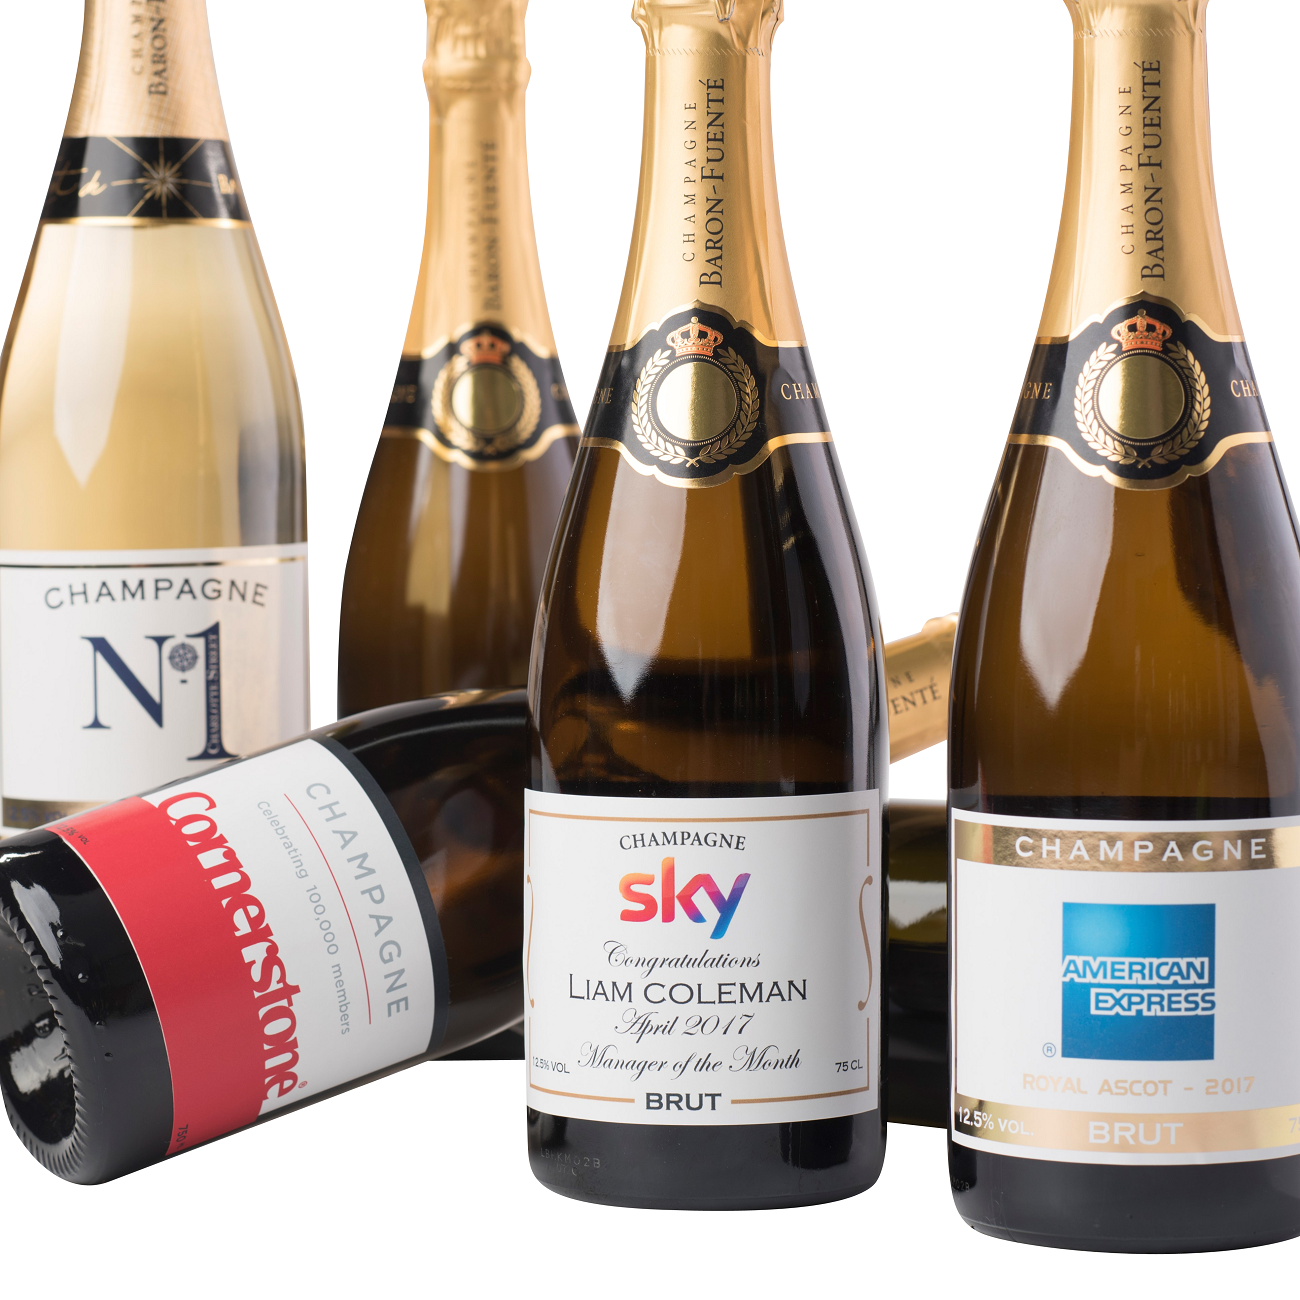 corporate champagne bottles showing different labels